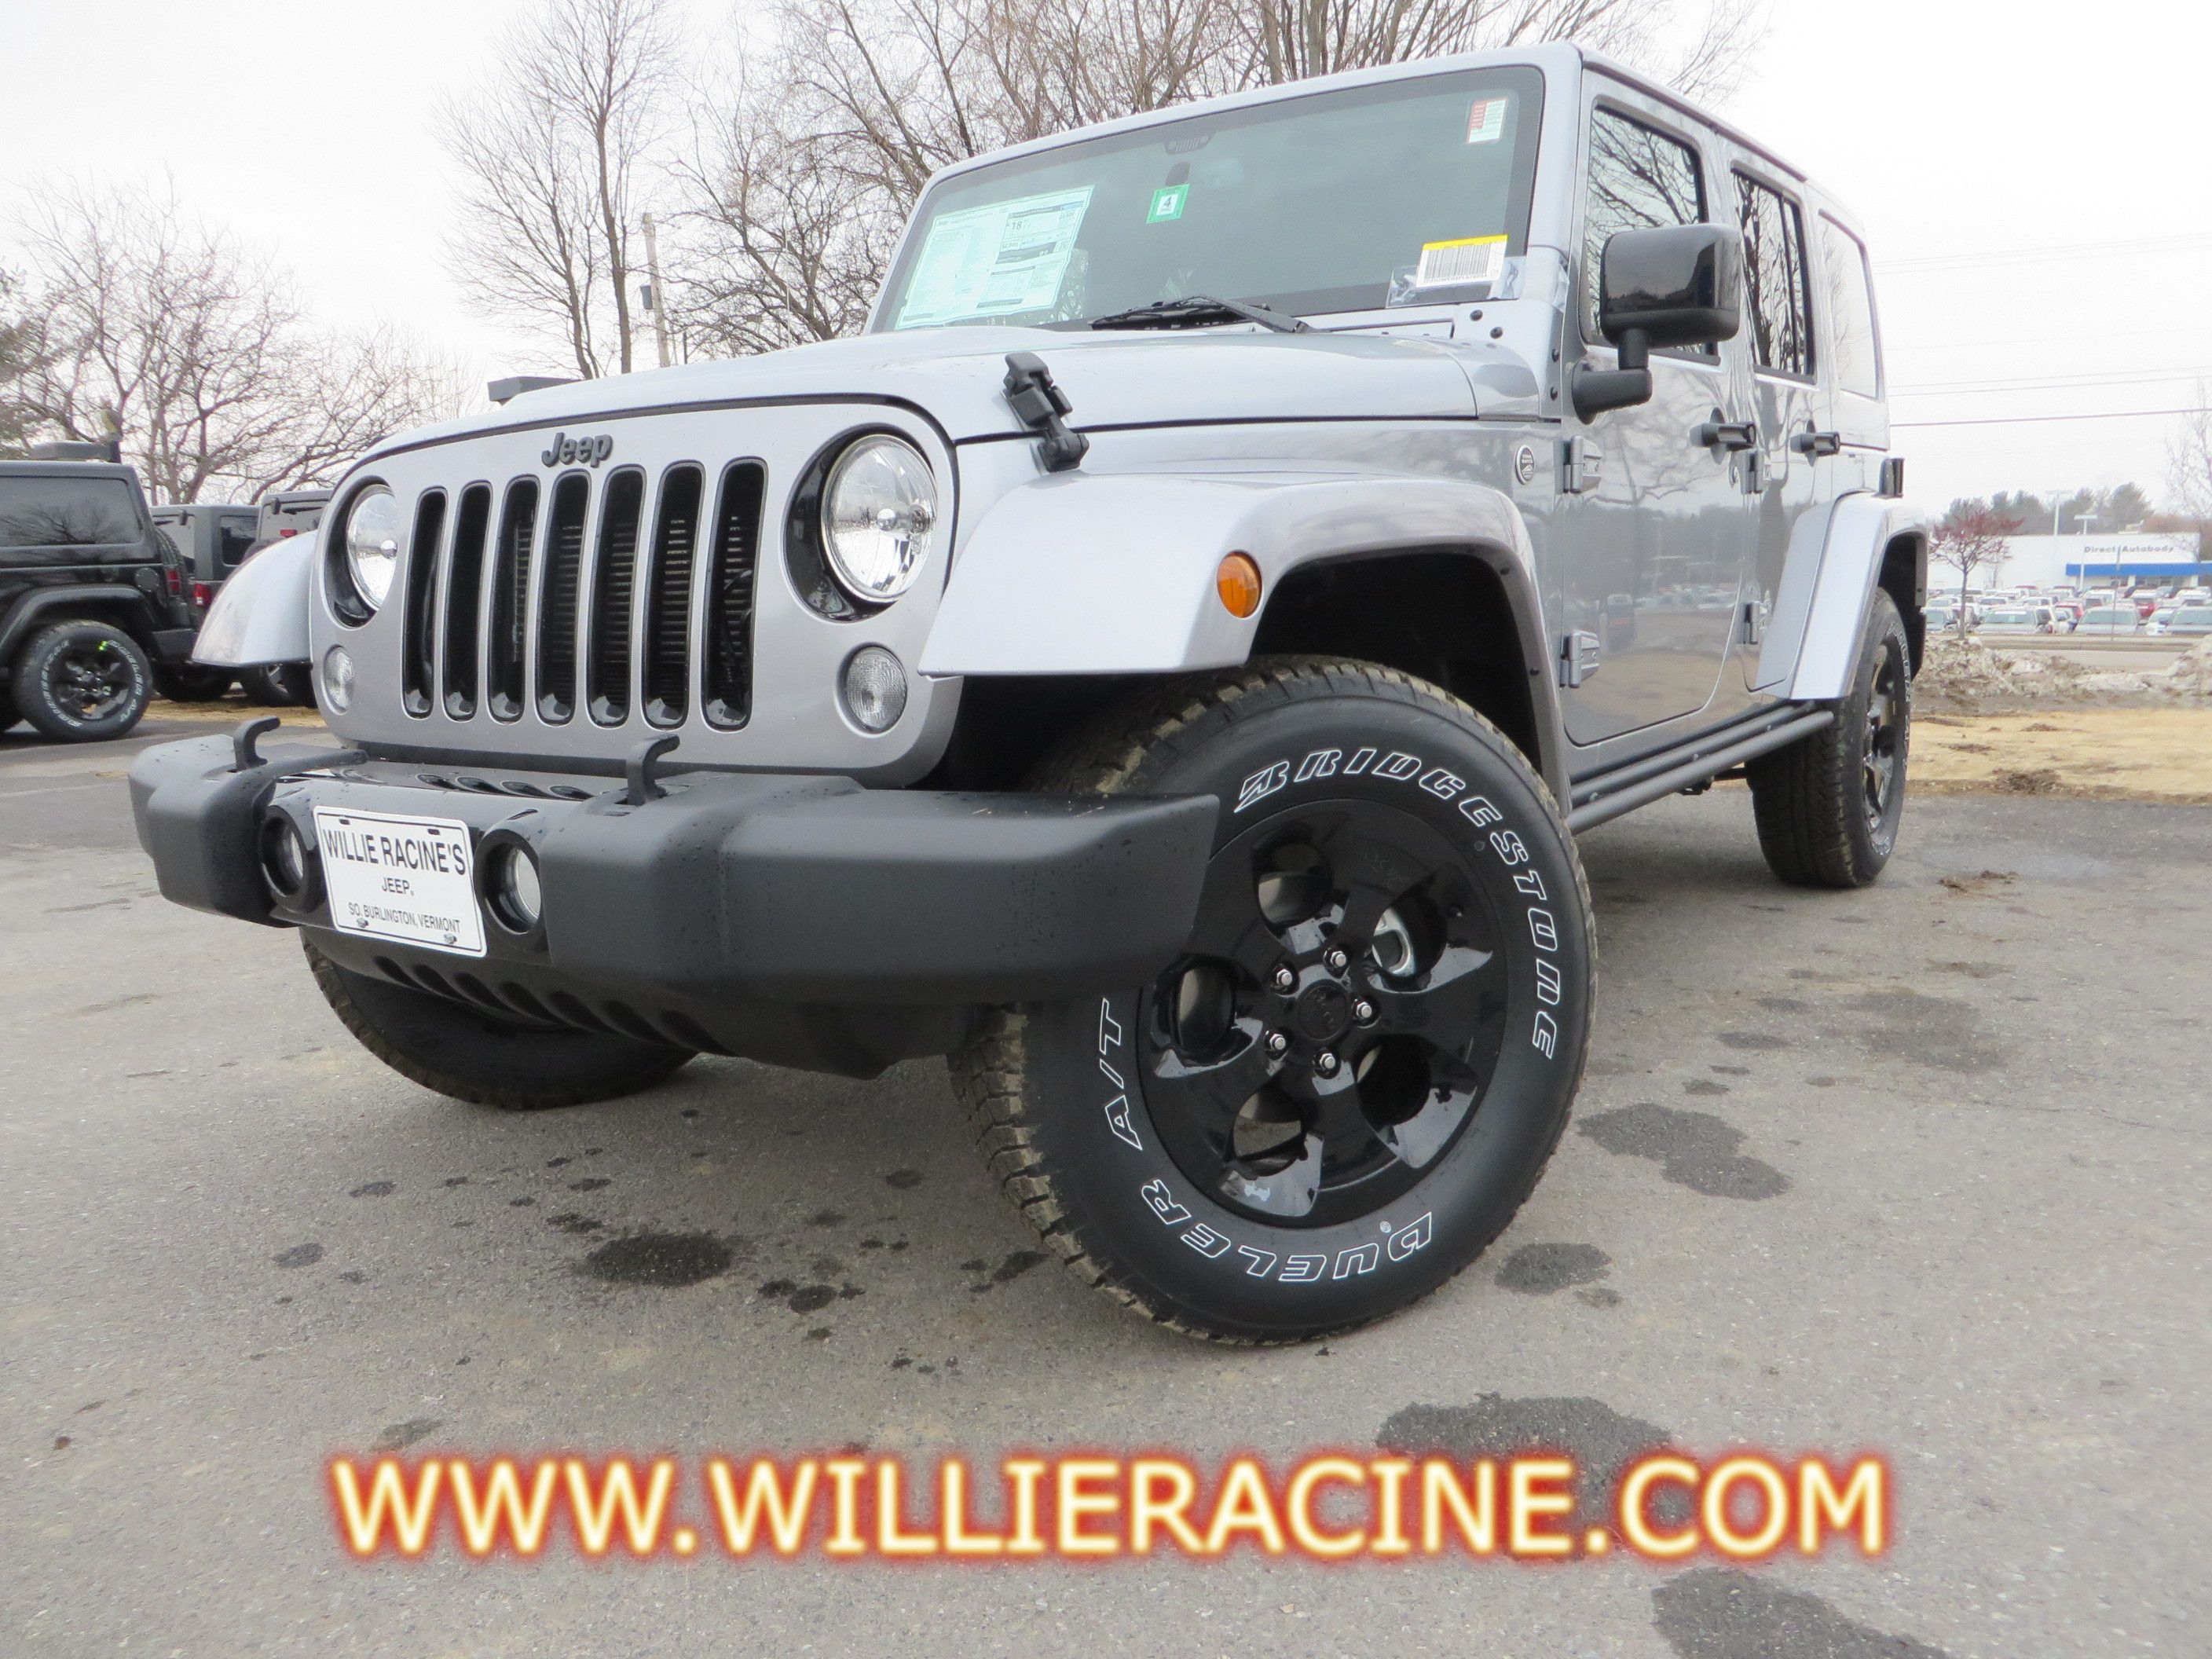 2015 Jeep Wrangler Unlimited Altitude In Billet Silver 2015 Jeep Wrangler 2015 Jeep Wrangler Unlimited 2015 Jeep